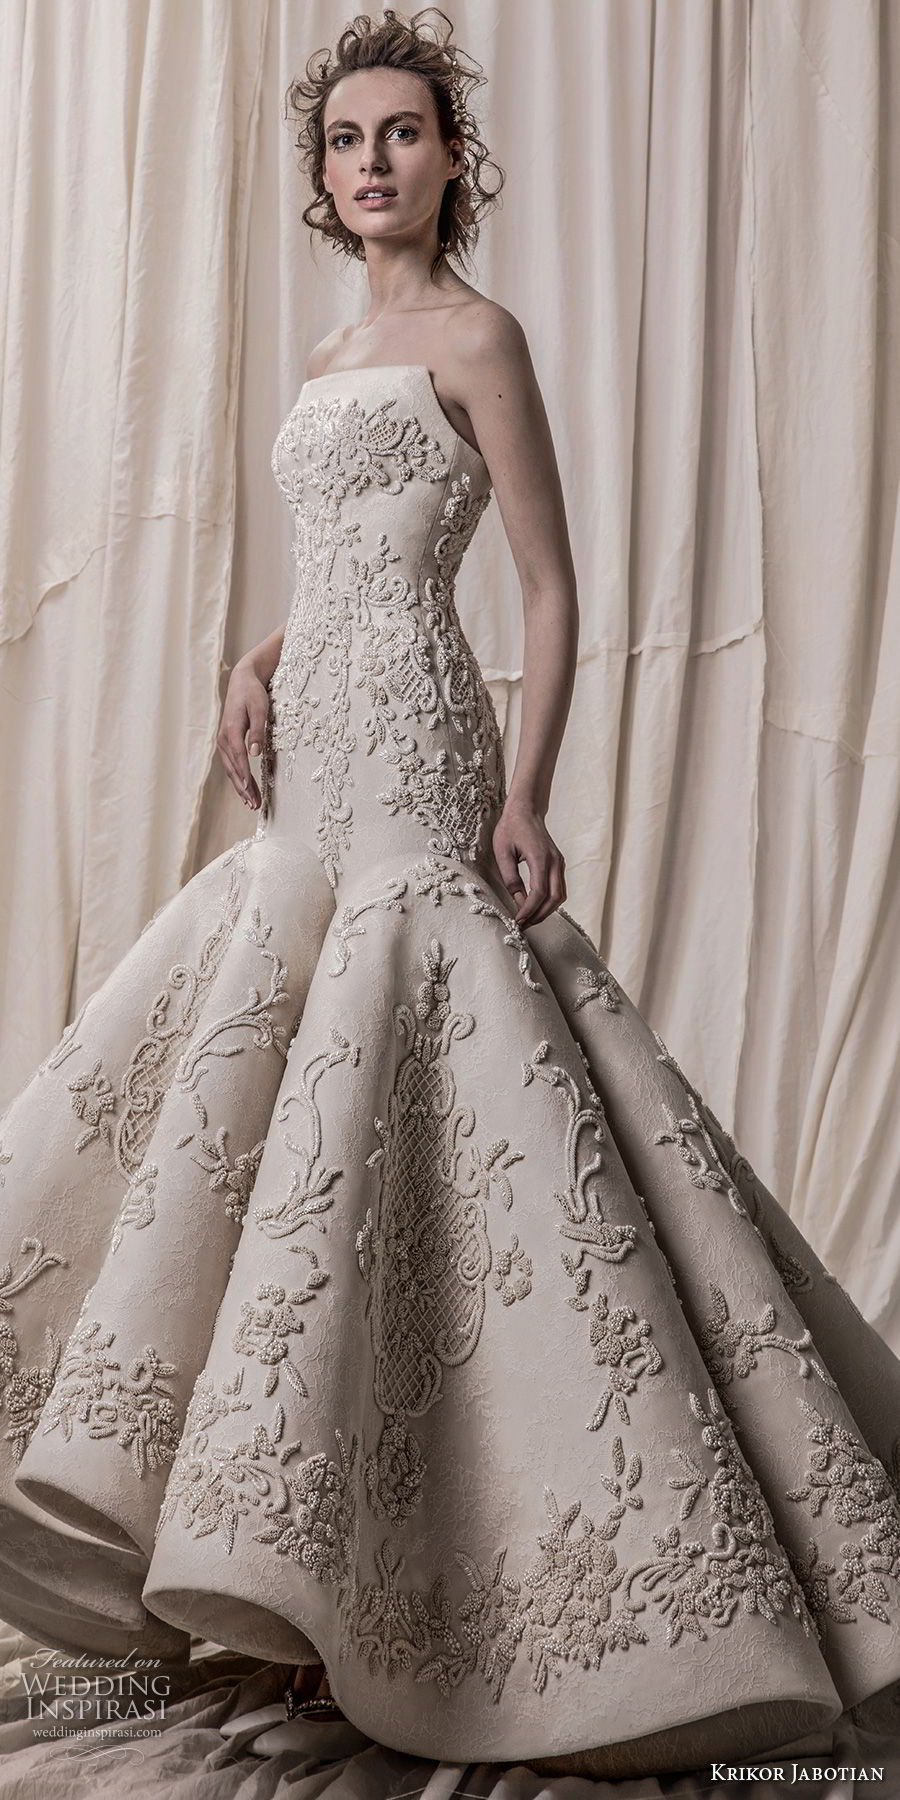 krikor jabotian spring 2018 bridal strapless sweetheart neckline full embellishment elegant glamorous mermaid wedding dress chapel train (02) mv